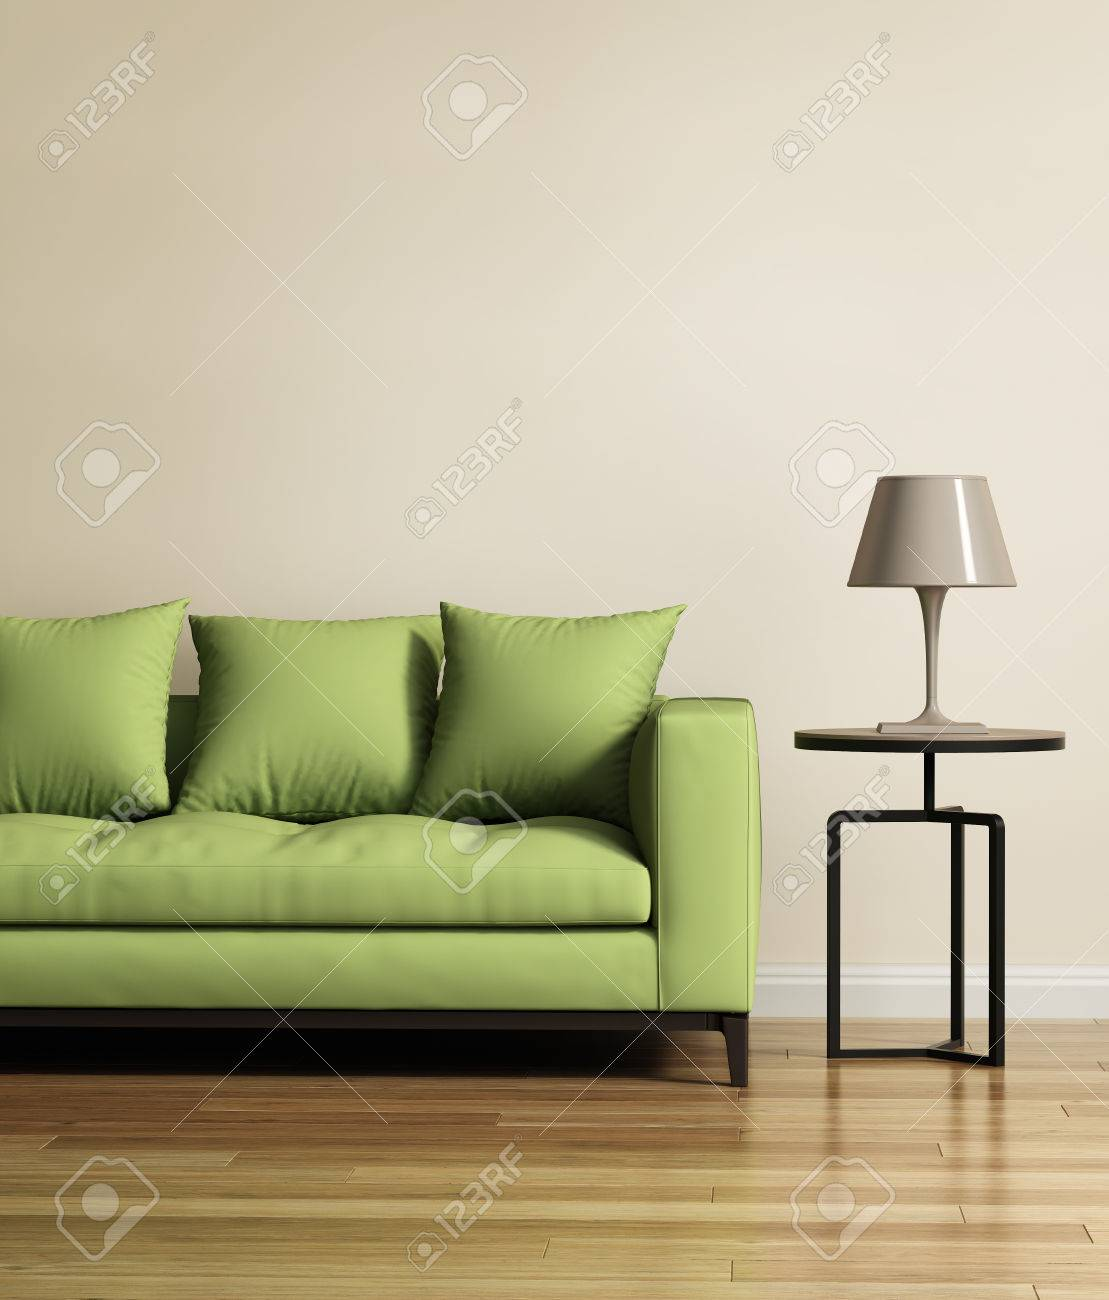 Amazing Living Room With A Light Green Sofa Stock Photo   51646570